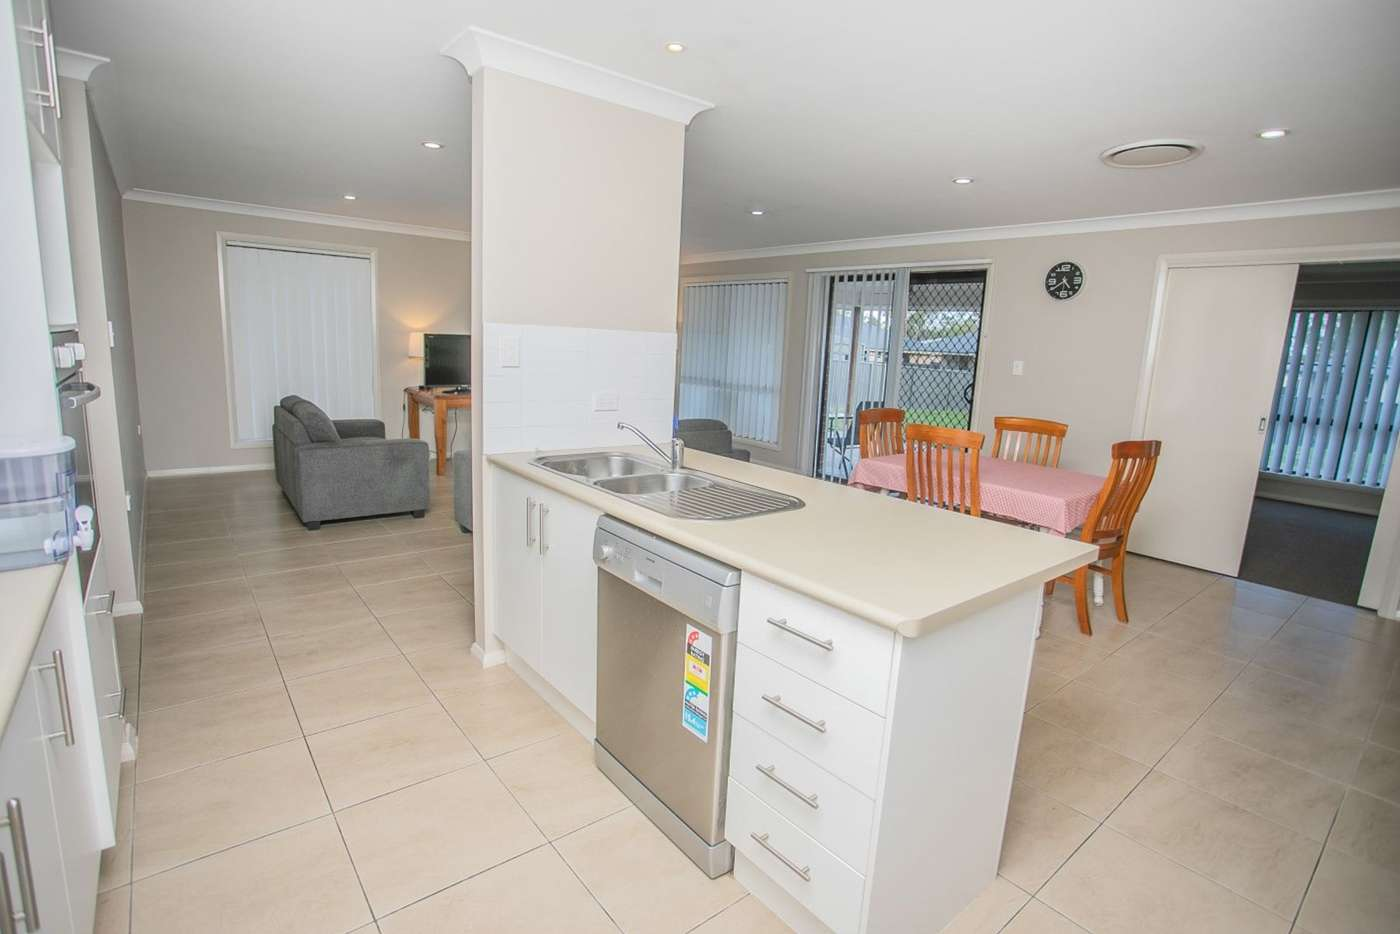 Fifth view of Homely house listing, 10 Gower Street, Chinchilla QLD 4413